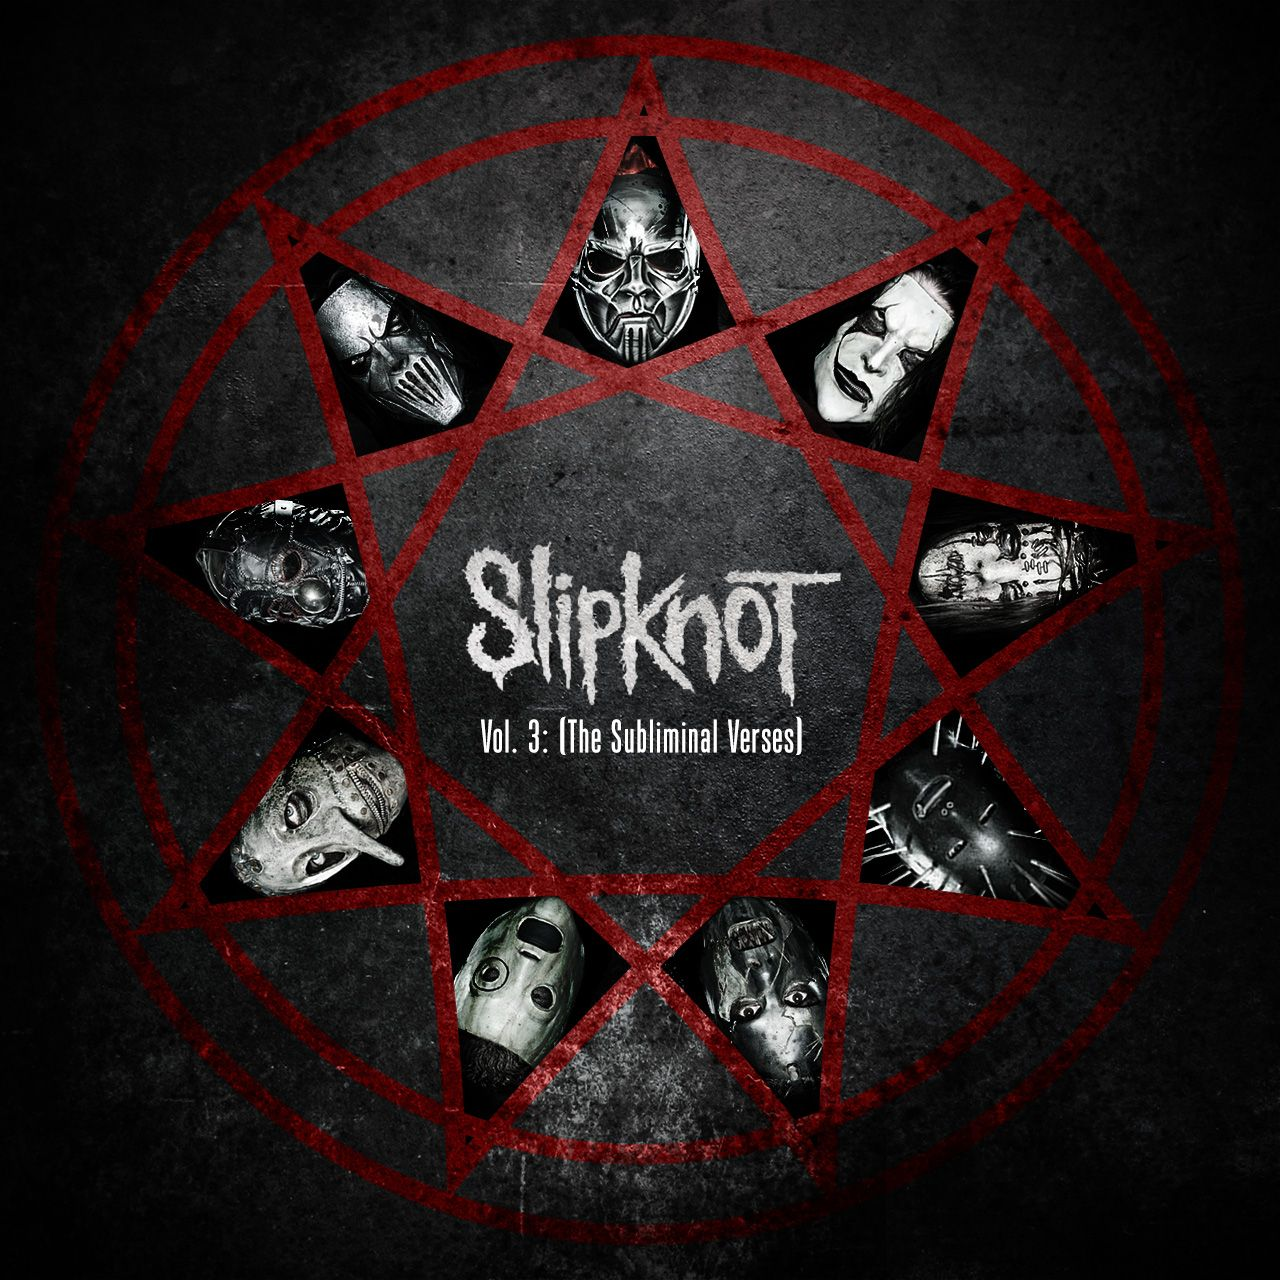 Album cover cover slipknot vol 3 the subliminal verses i album cover cover slipknot vol 3 the subliminal verses i biocorpaavc Choice Image